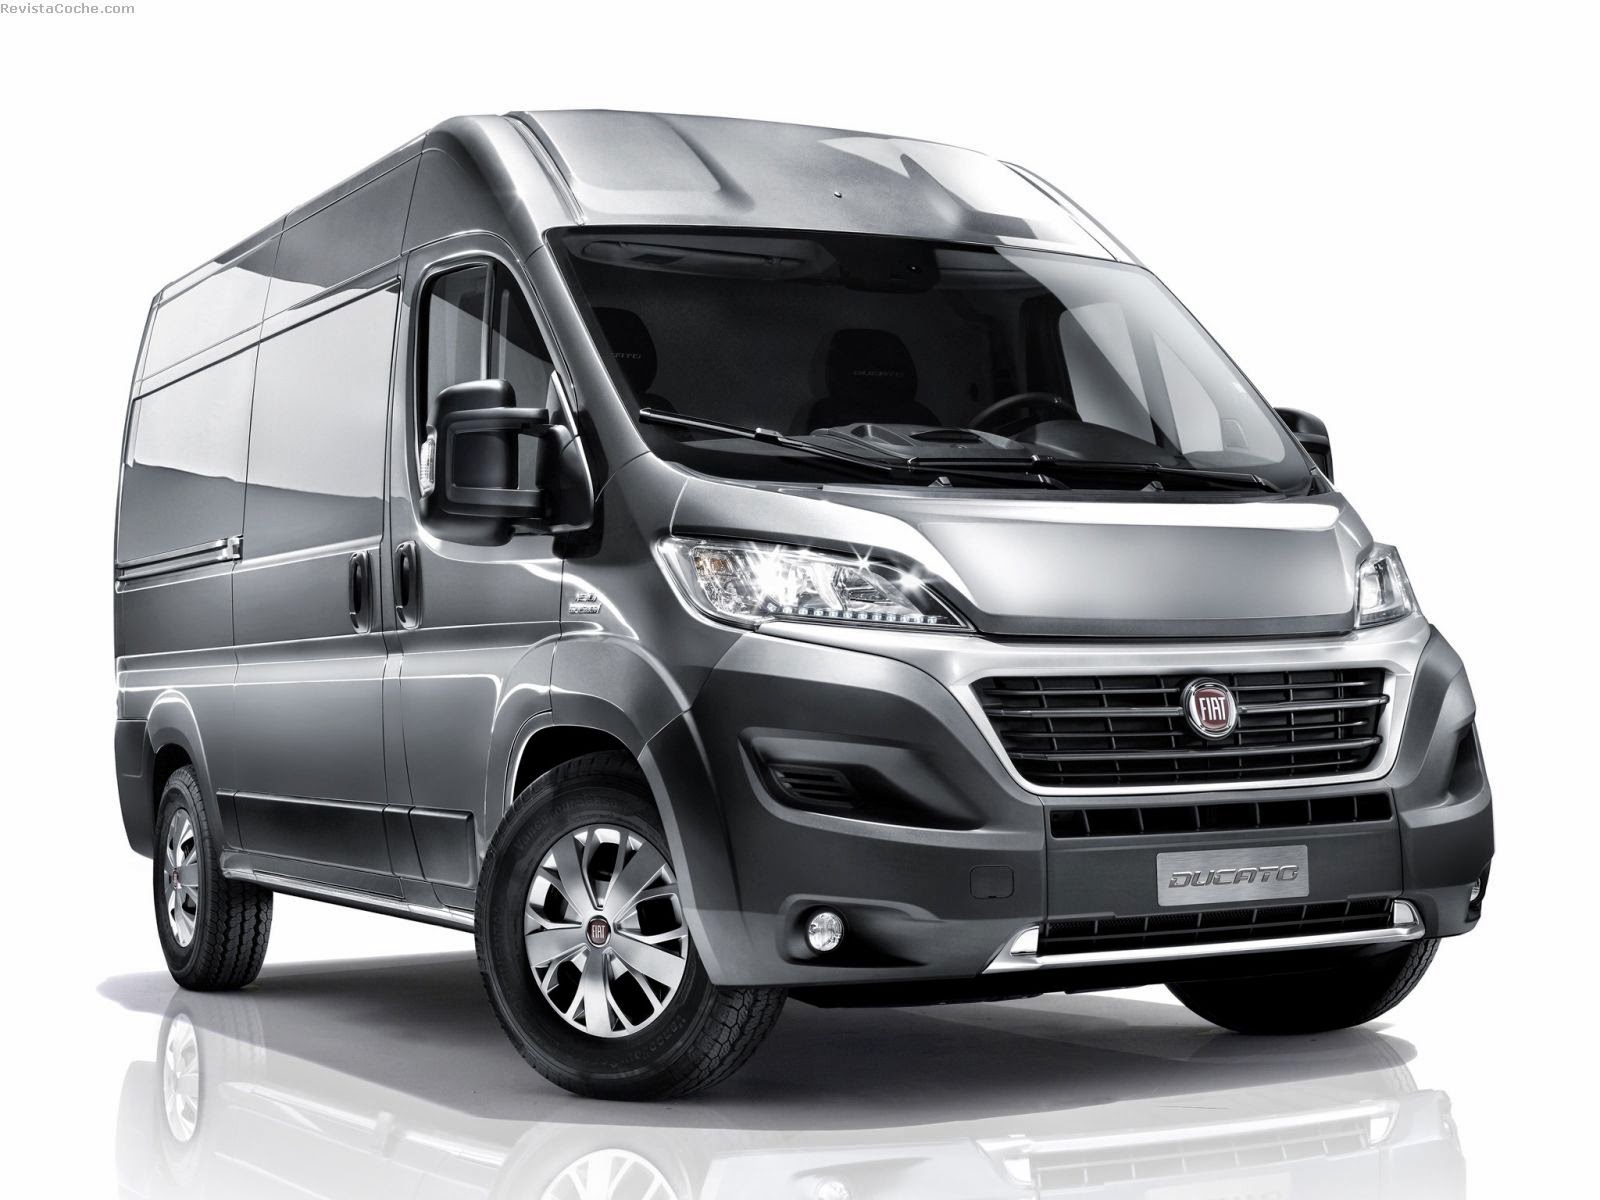 revista coche nuevo fiat ducato 2015. Black Bedroom Furniture Sets. Home Design Ideas